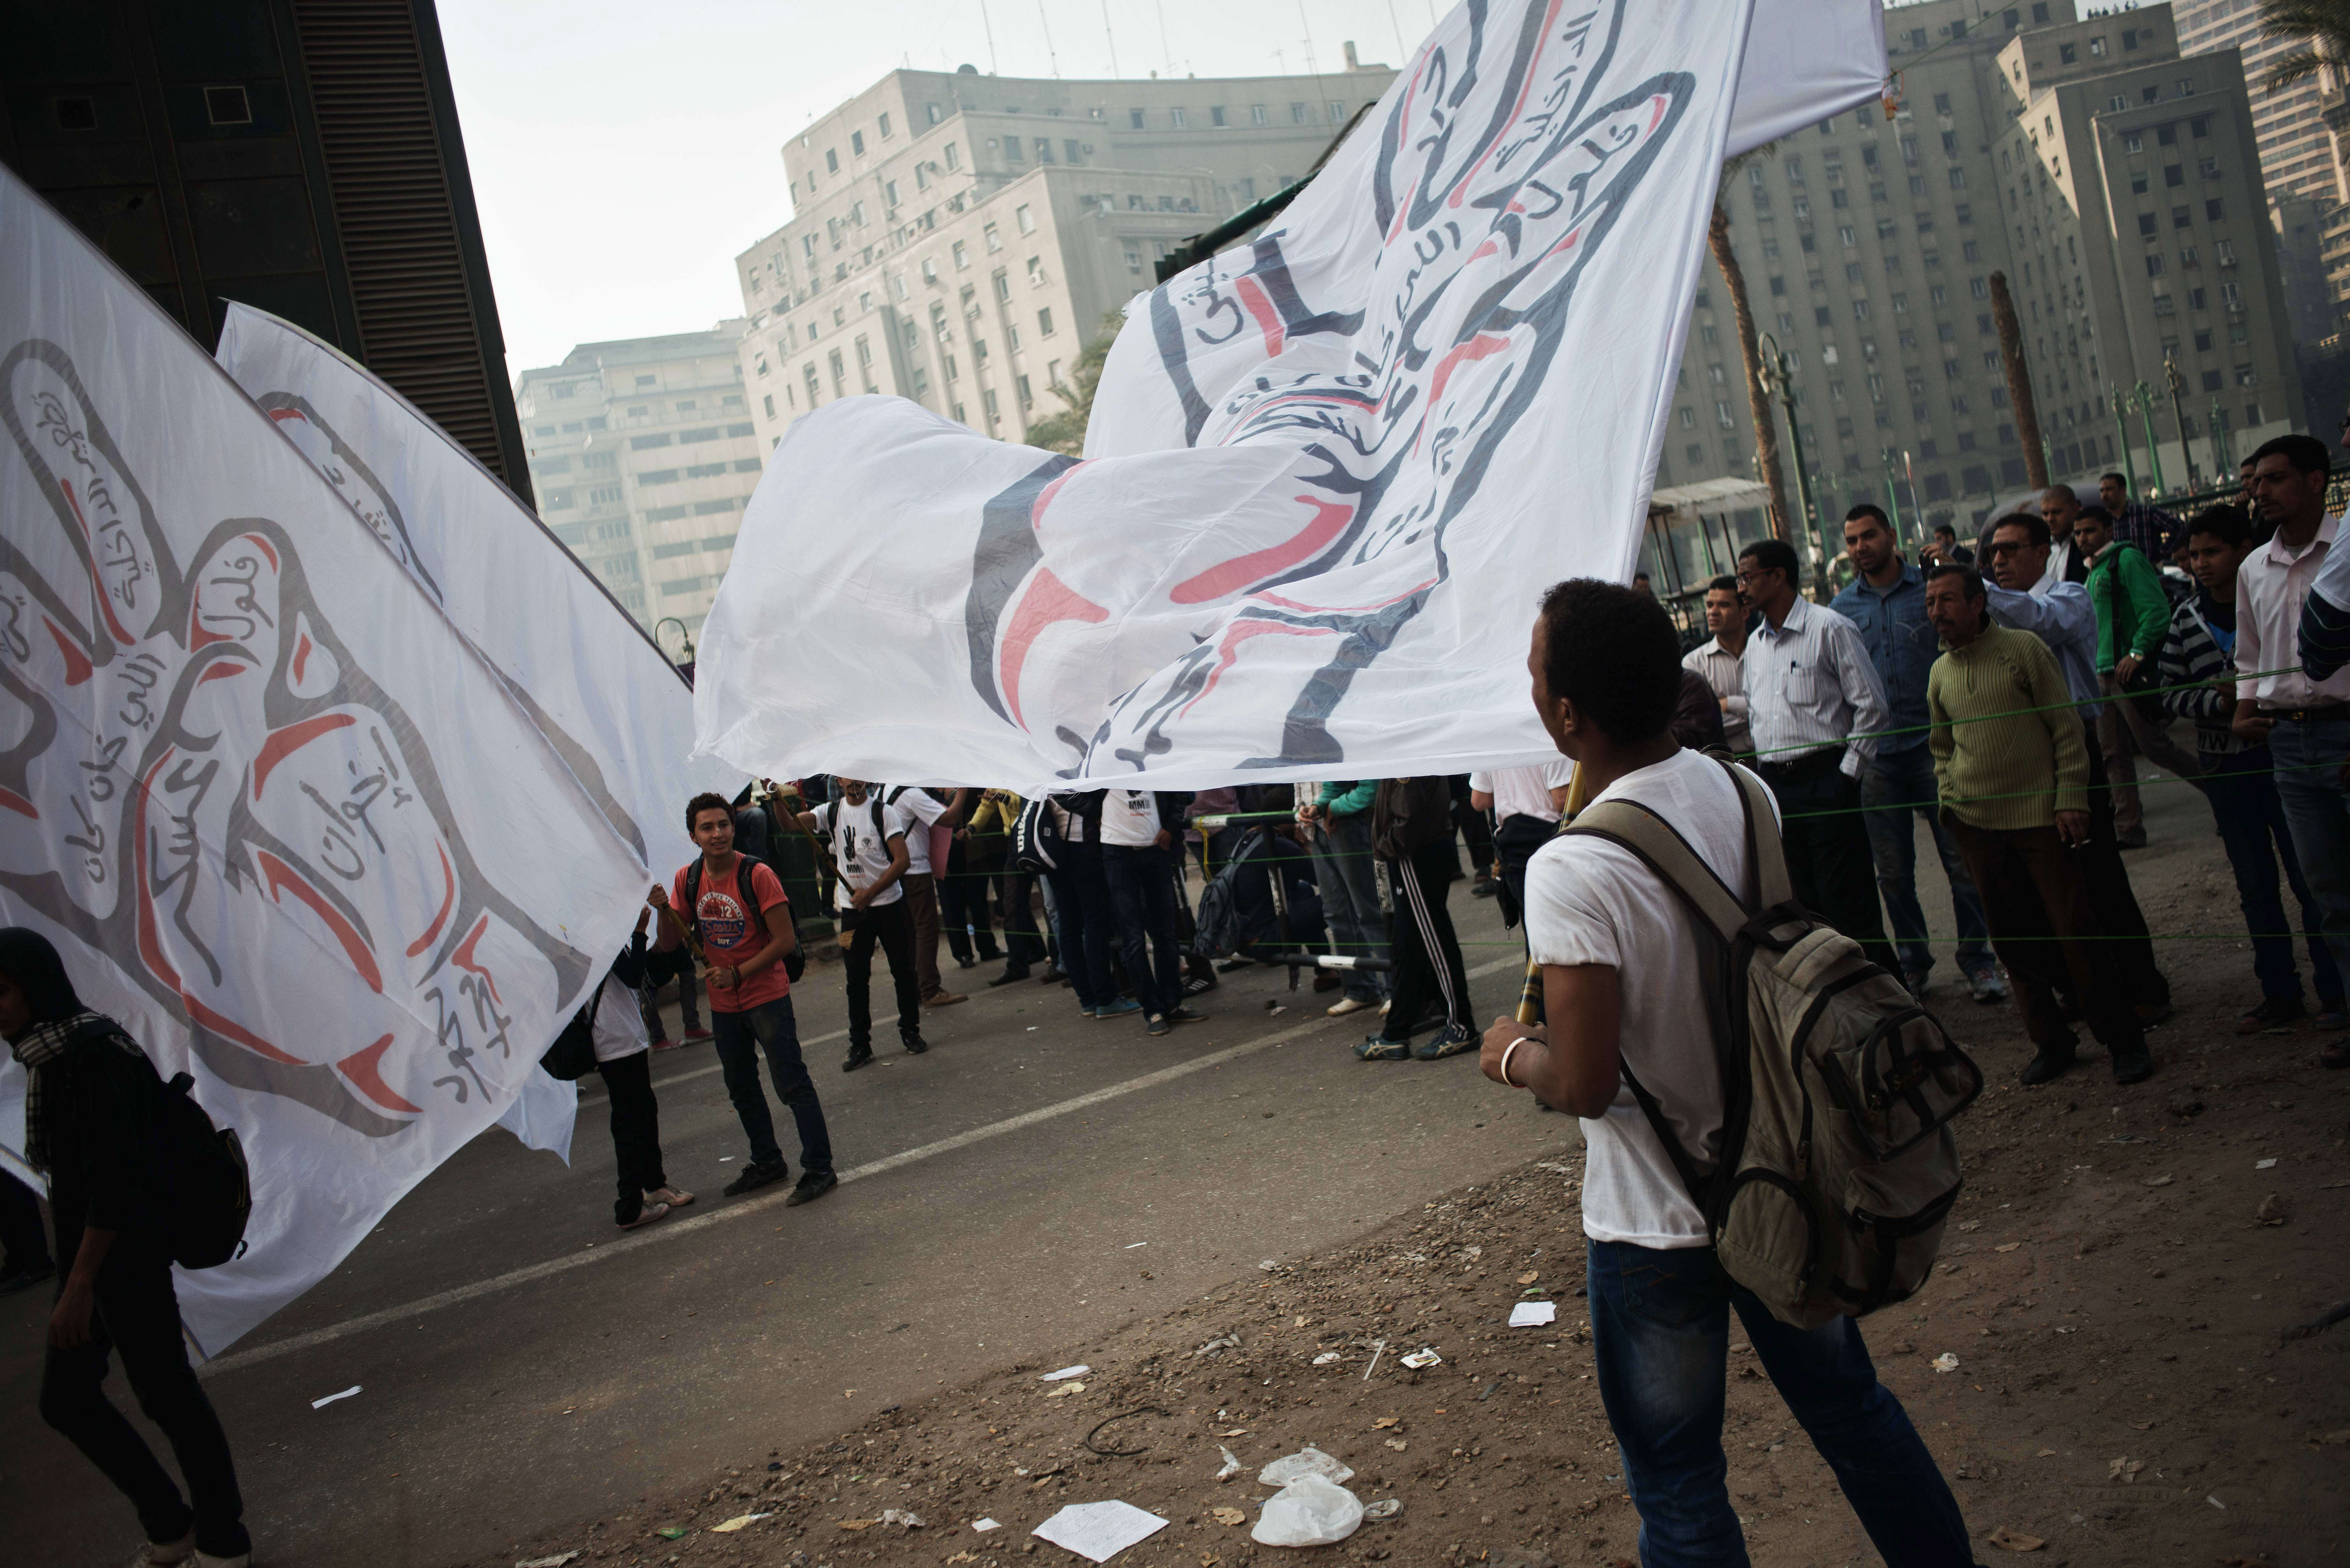 Egyptian protesters gather in Mohammed Mahmud street in central Cairo on November 19, 2013 to mark the anniversary of protests against the military in 2011 that ignited deadly clashes with security forces.  (AFP PHOTO/GIANLUIGI GUERCIA)